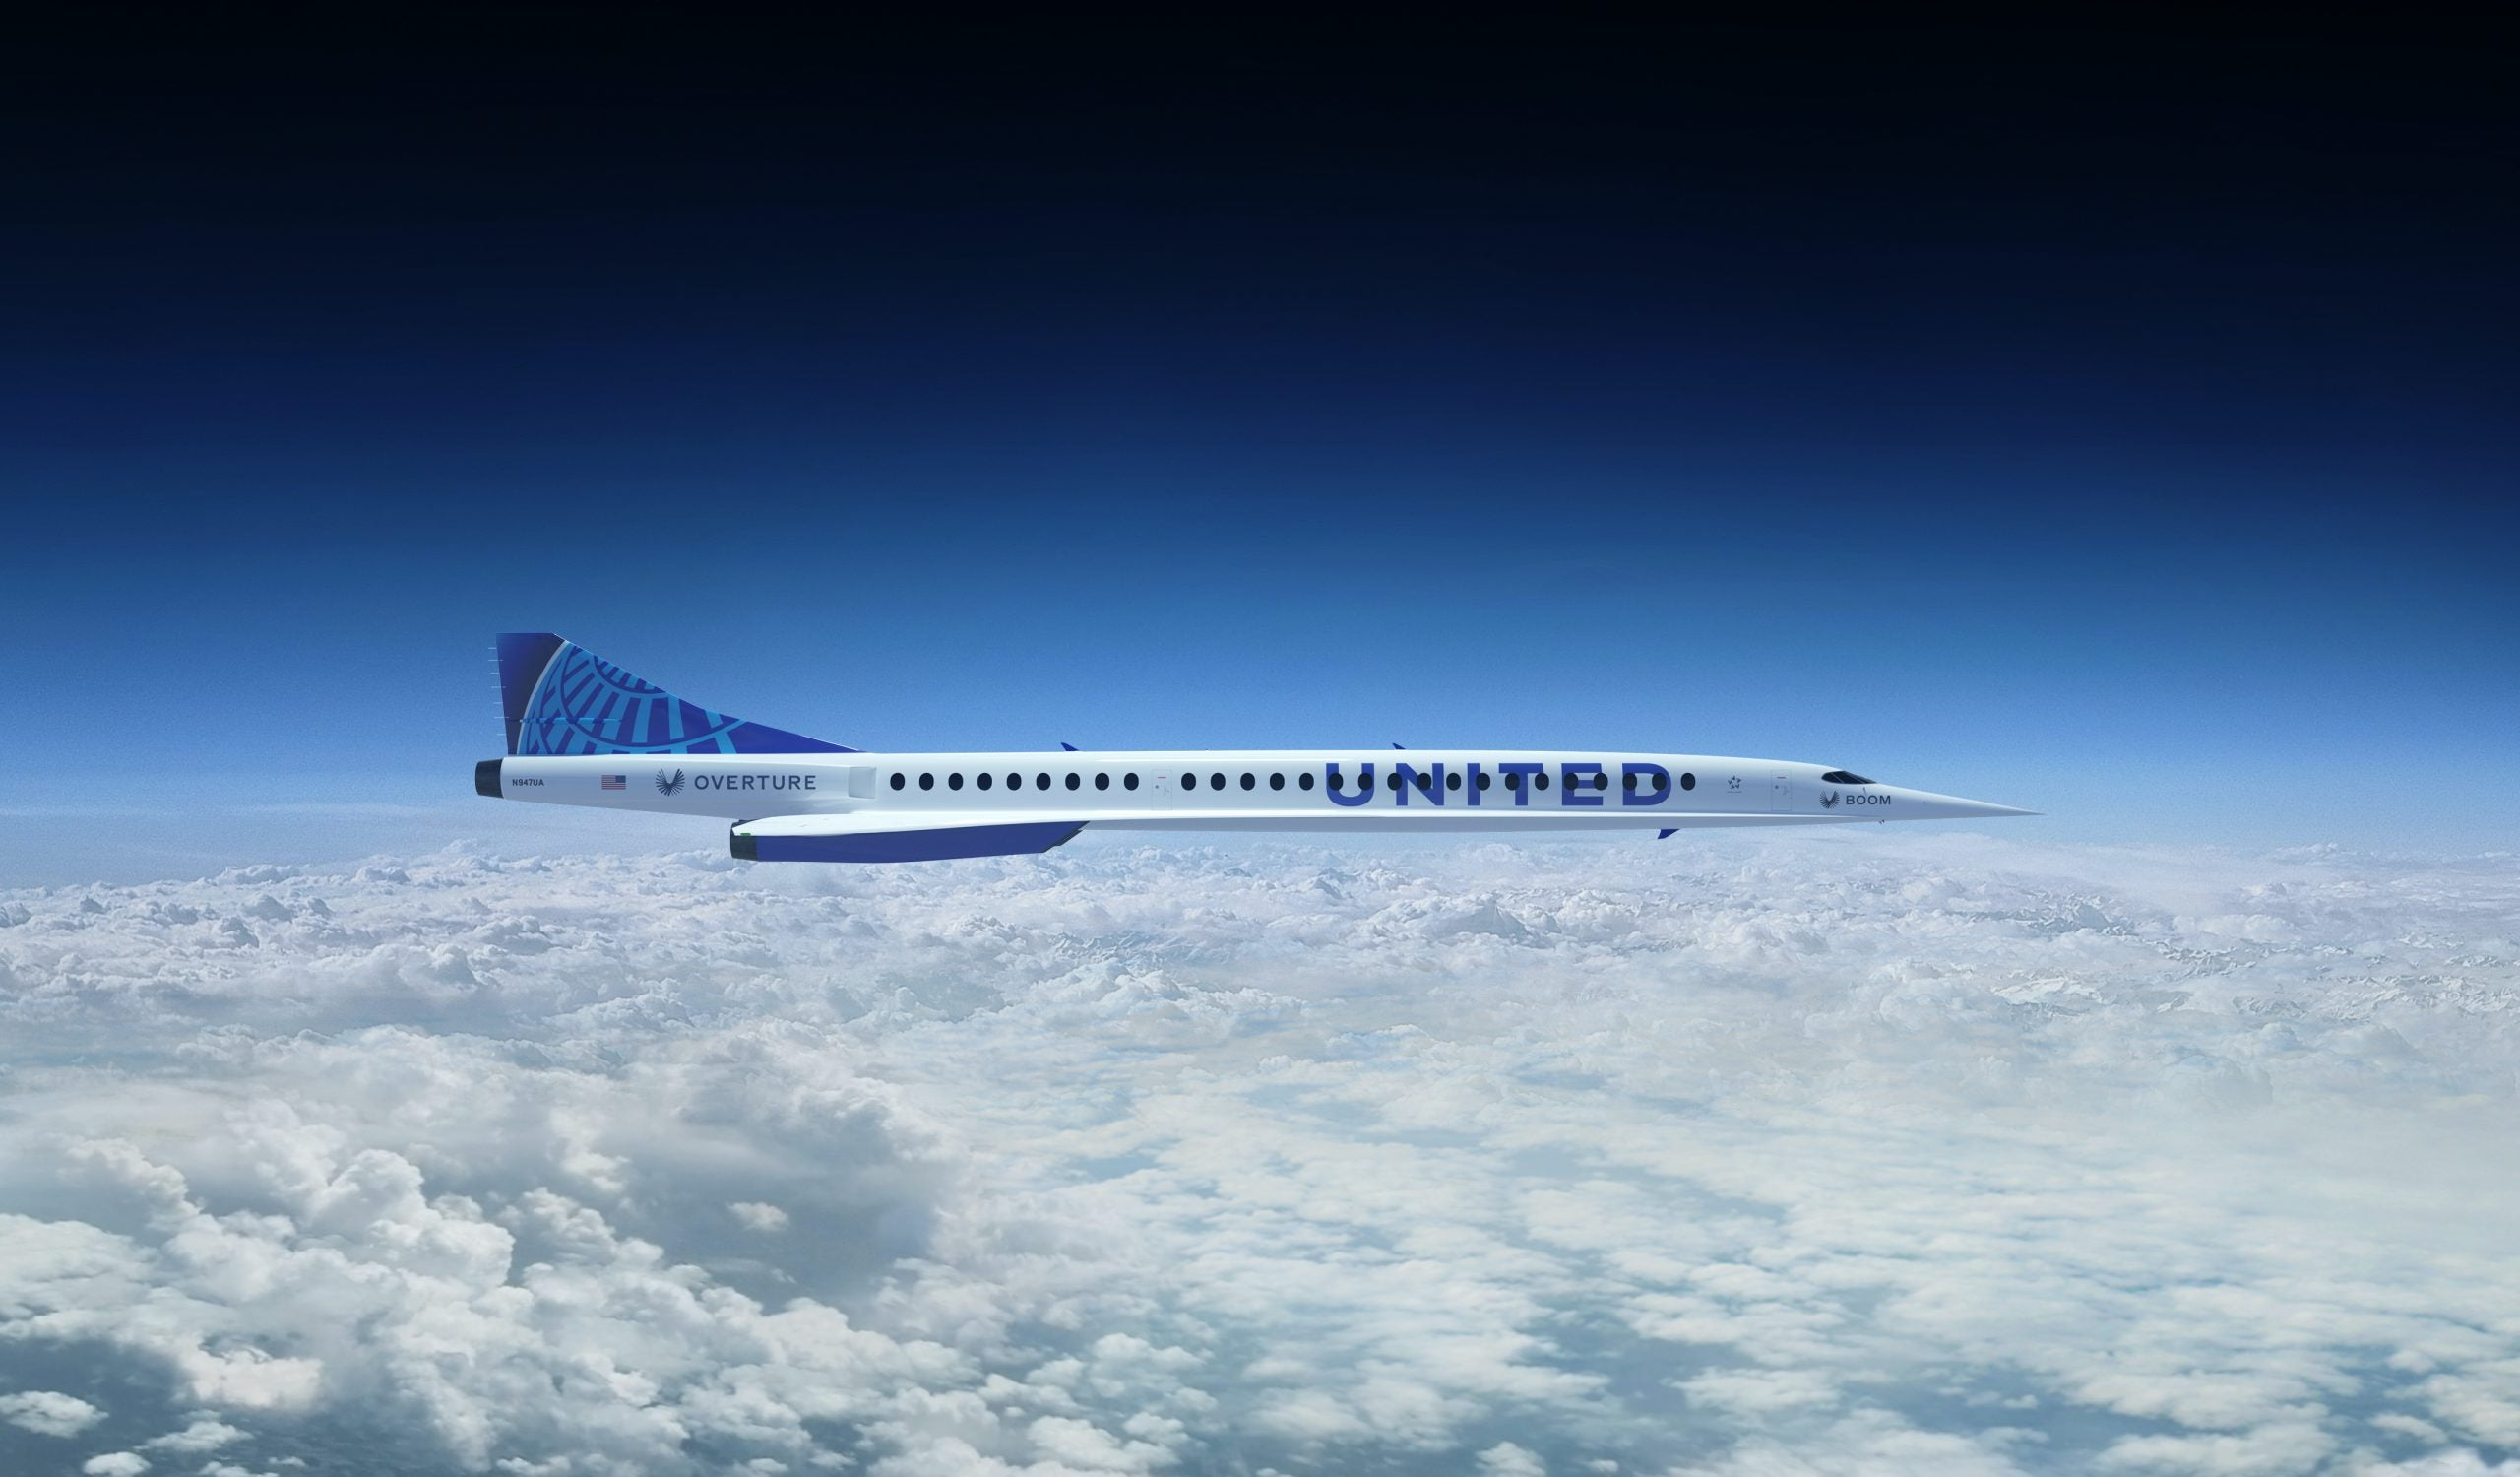 United Airlines announces deal with Boom Supersonic for faster-than-sound commercial flights